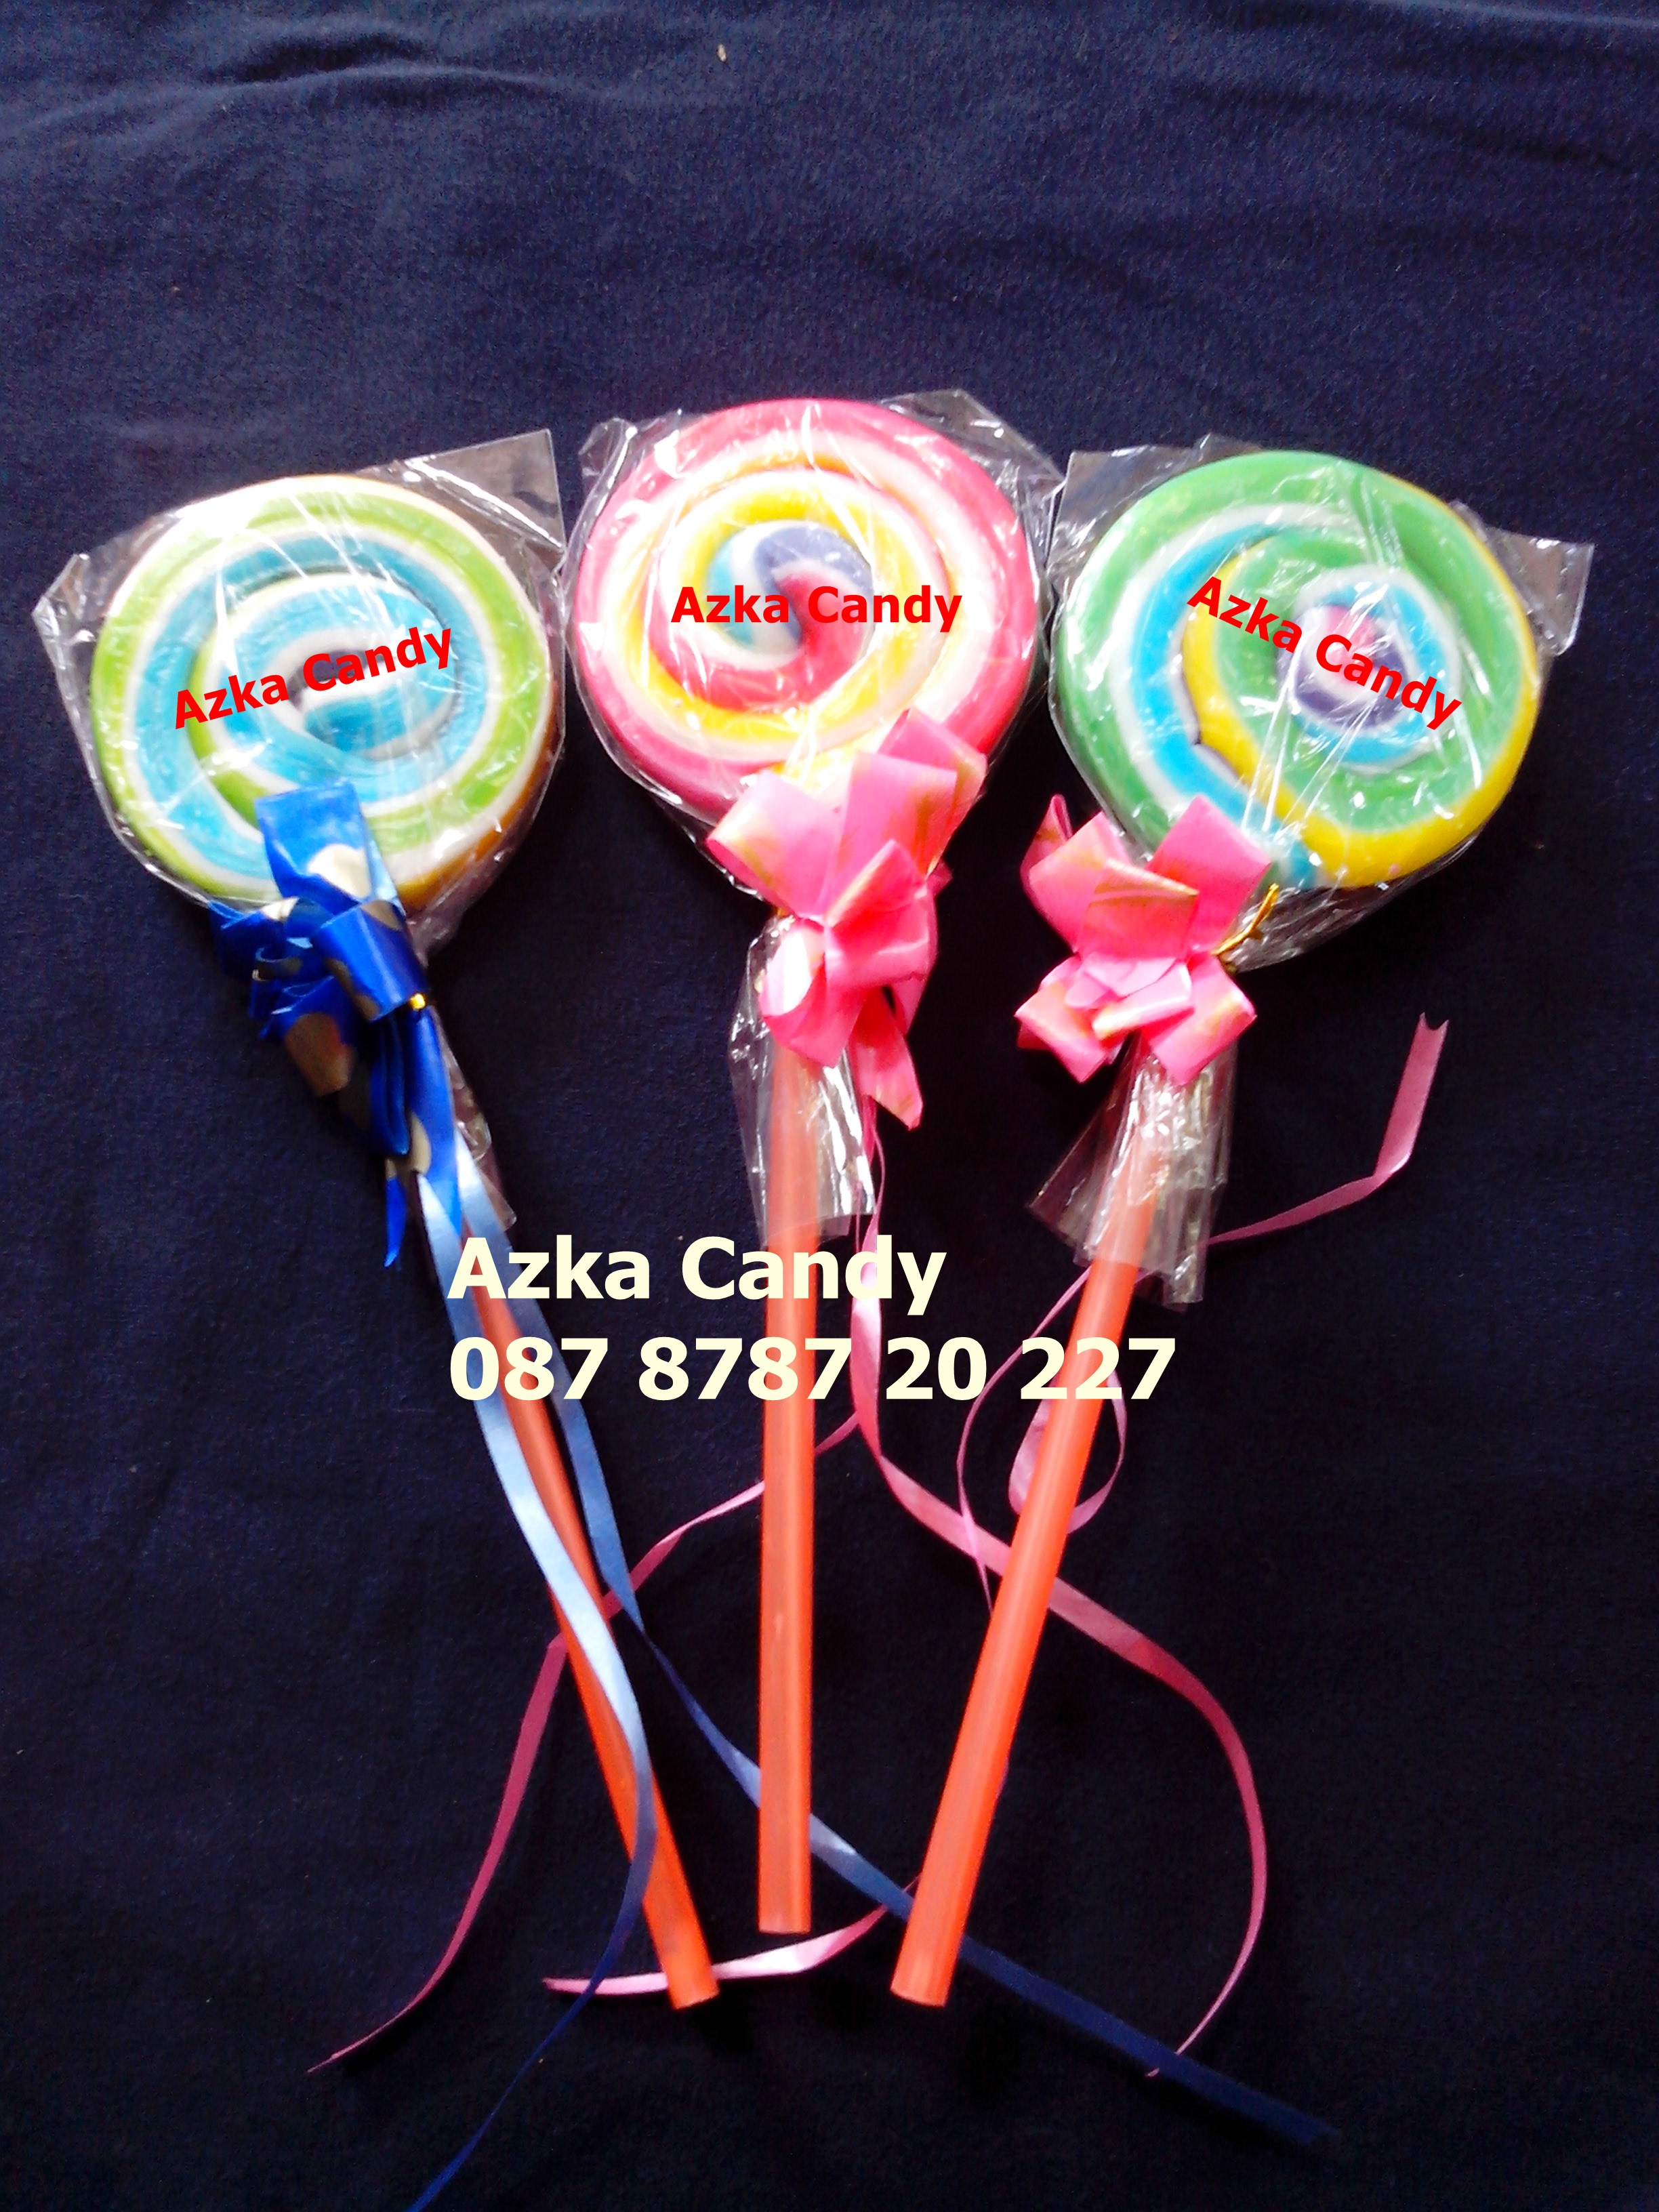 supplier permen lolipop di madiun